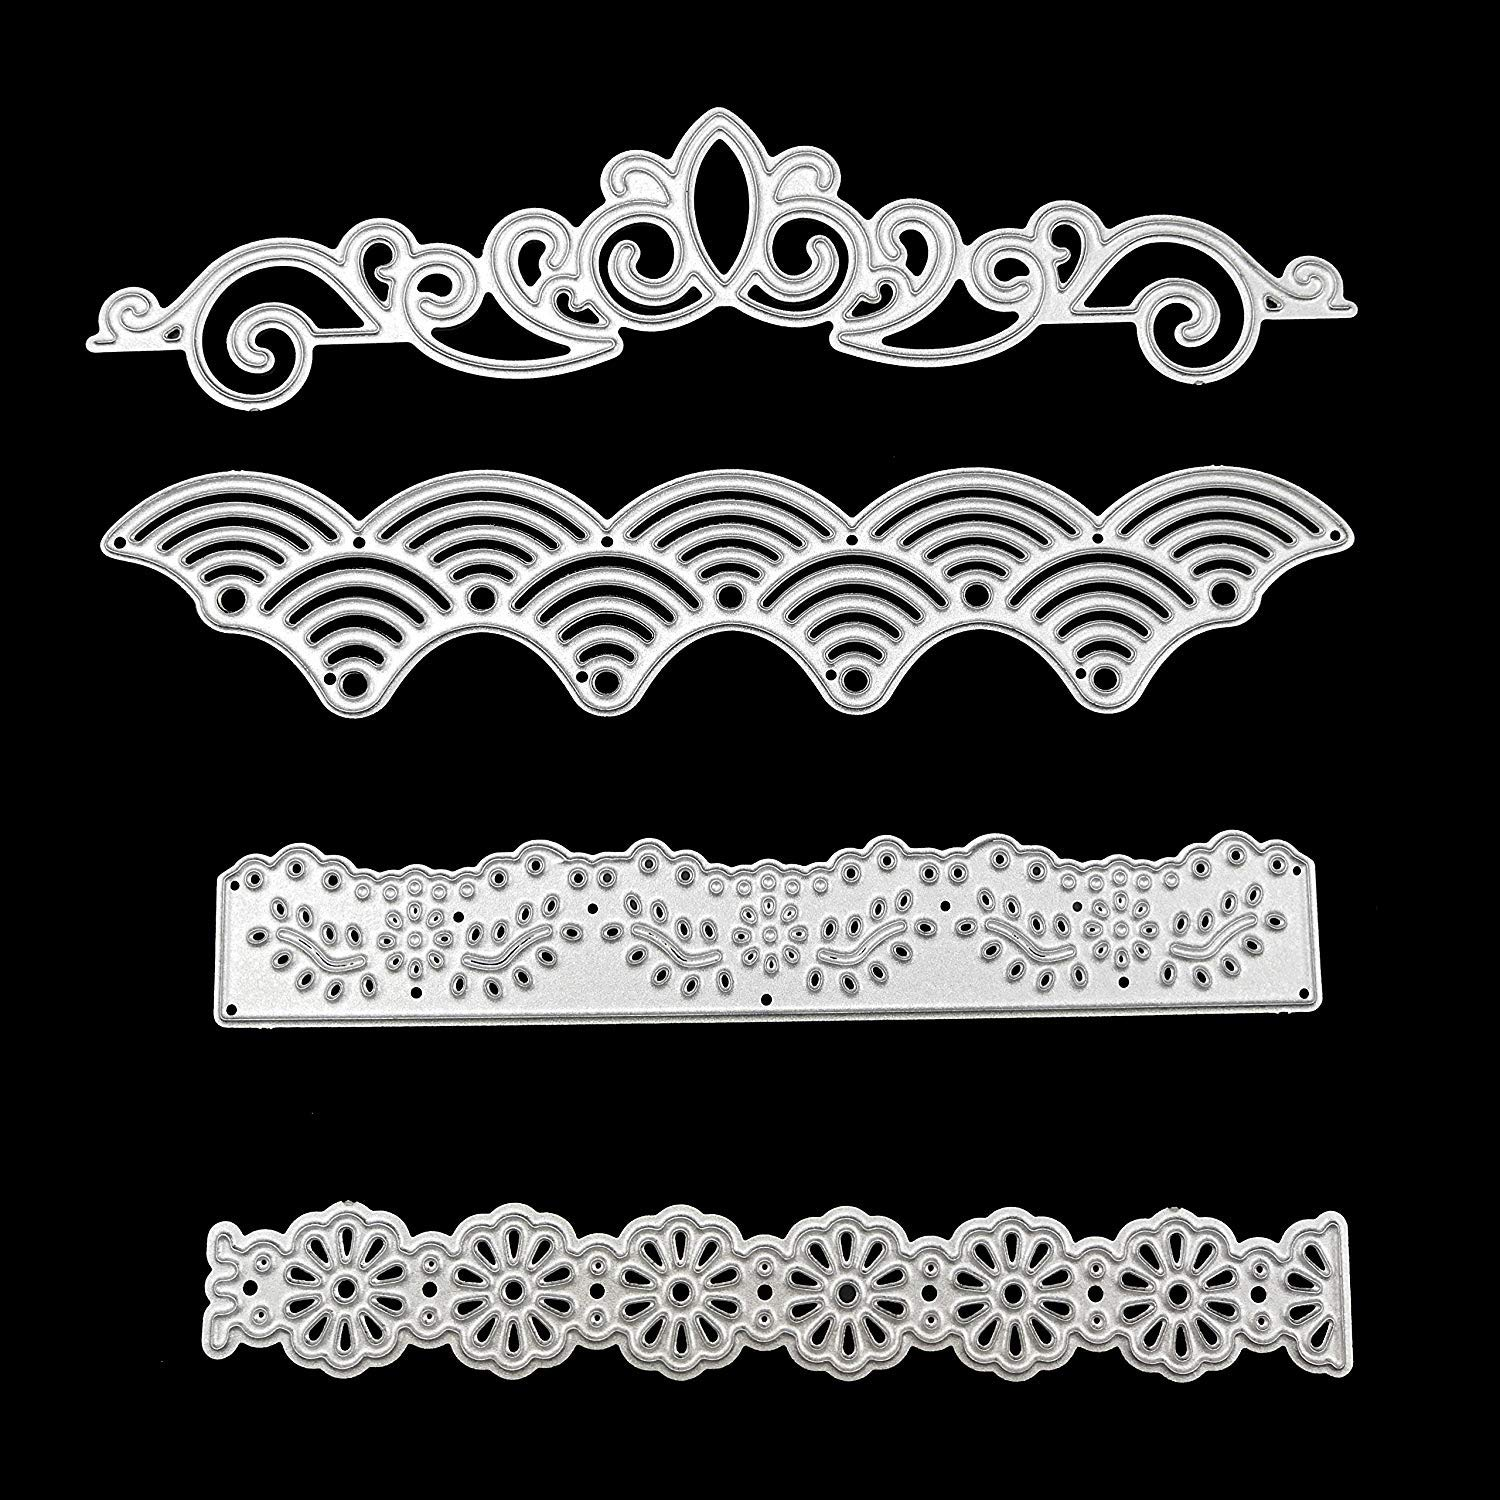 4 Pcs Metal Embossing Lace Cutting Dies Stencils Scrapbooking Dies Cuts for DIY Crafts New Year, Wedding, Valentine's, Present Greeting Cards Albums Decoration Flower by SKYCOOOOL Valentine' s